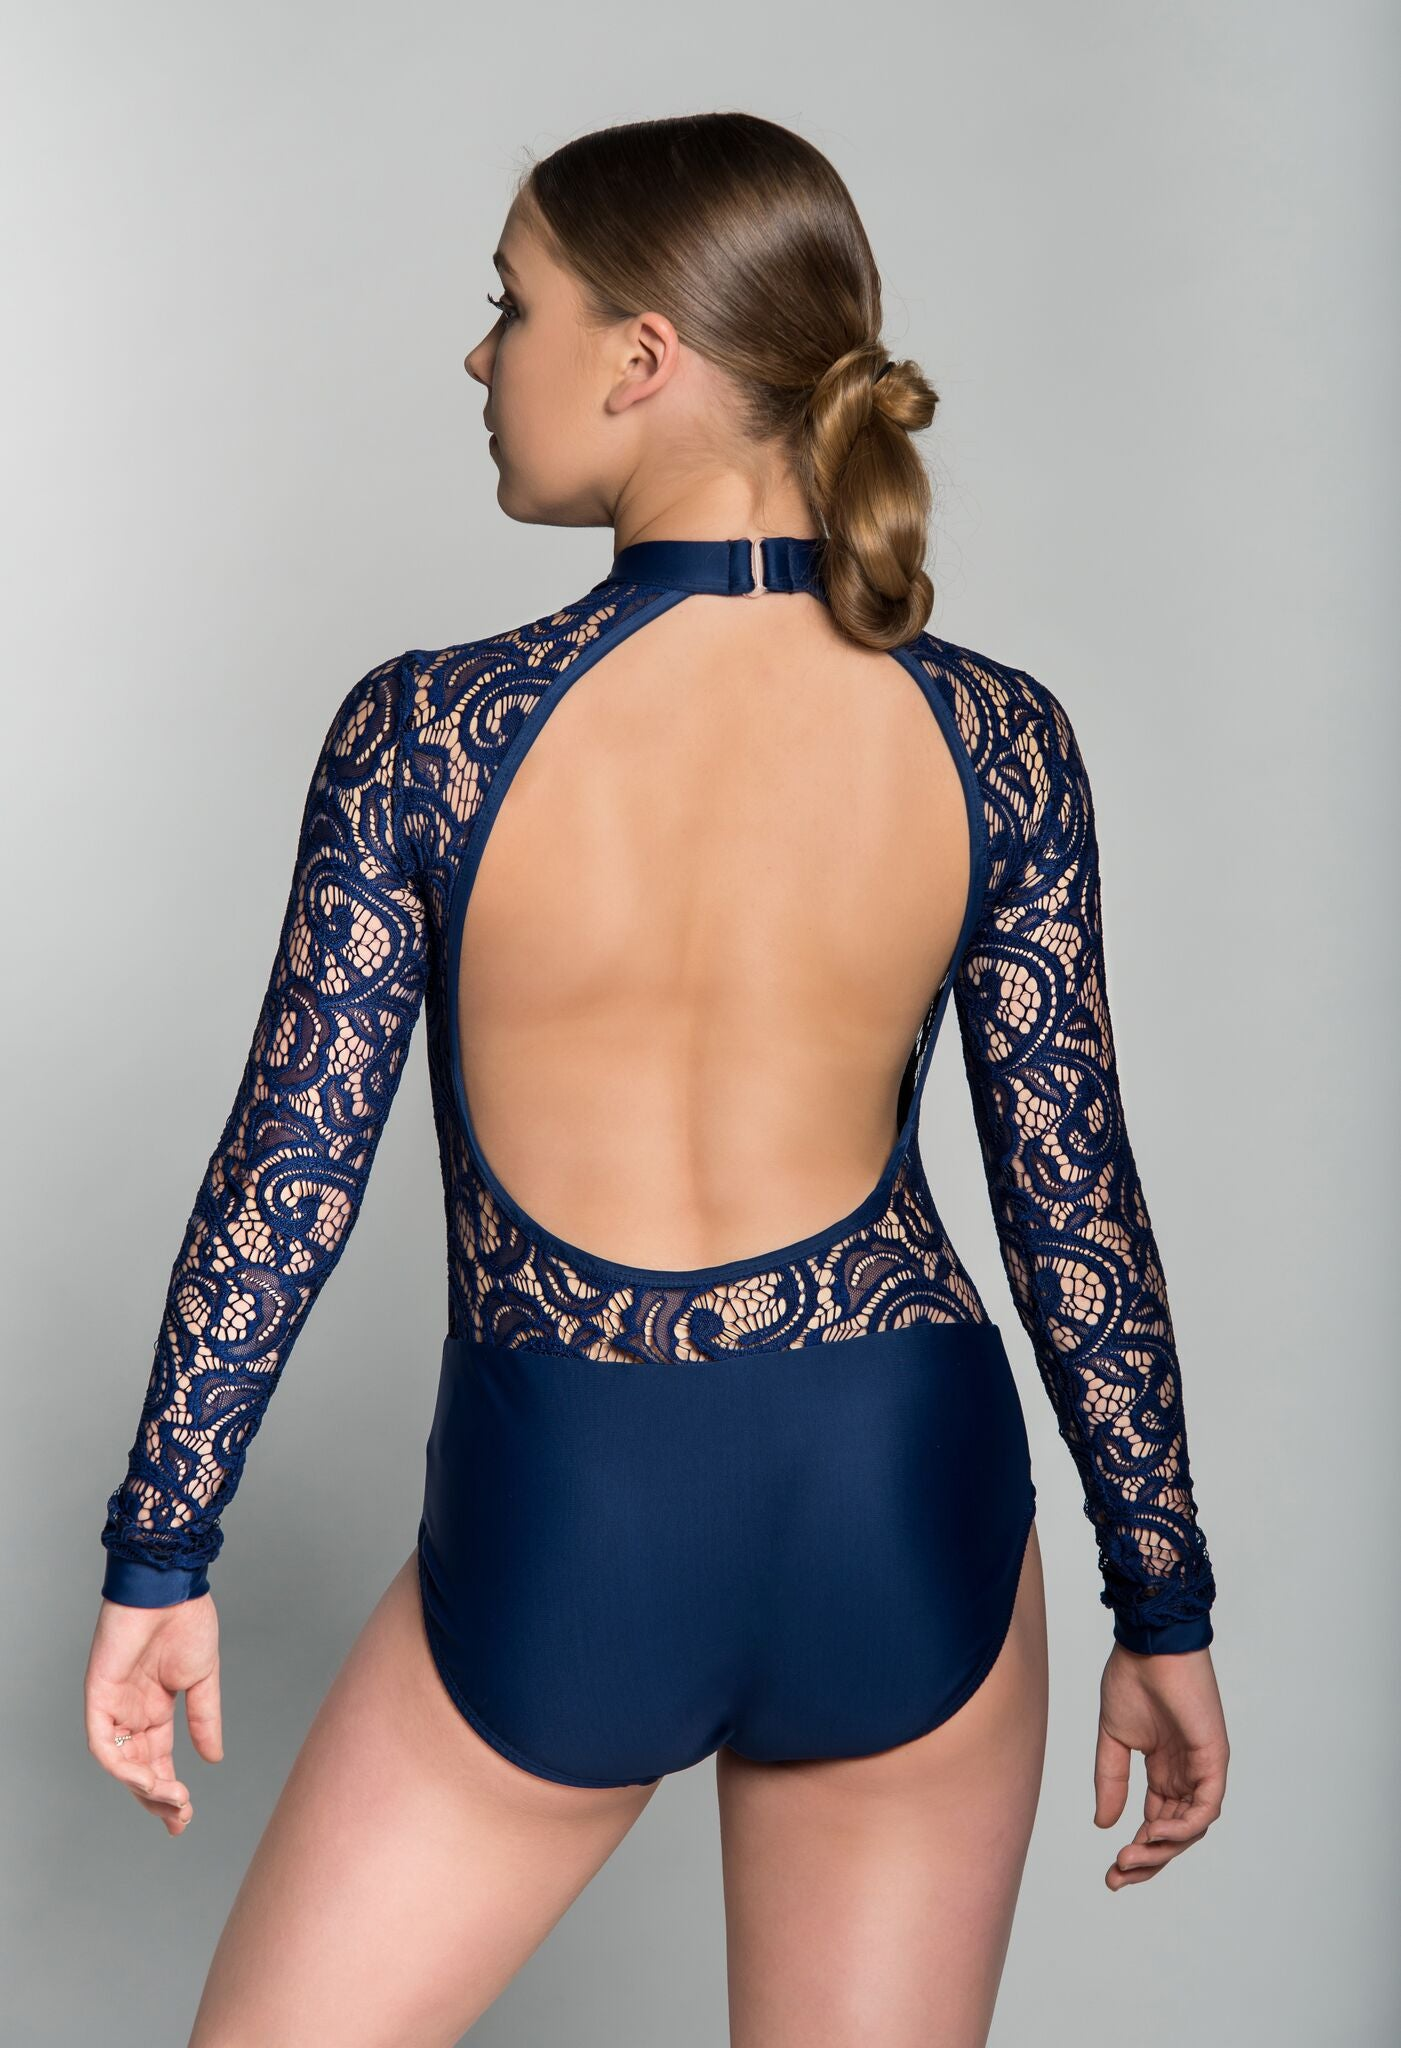 ASHTON CHILD LEOTARD: LONG SLEEVE LACE